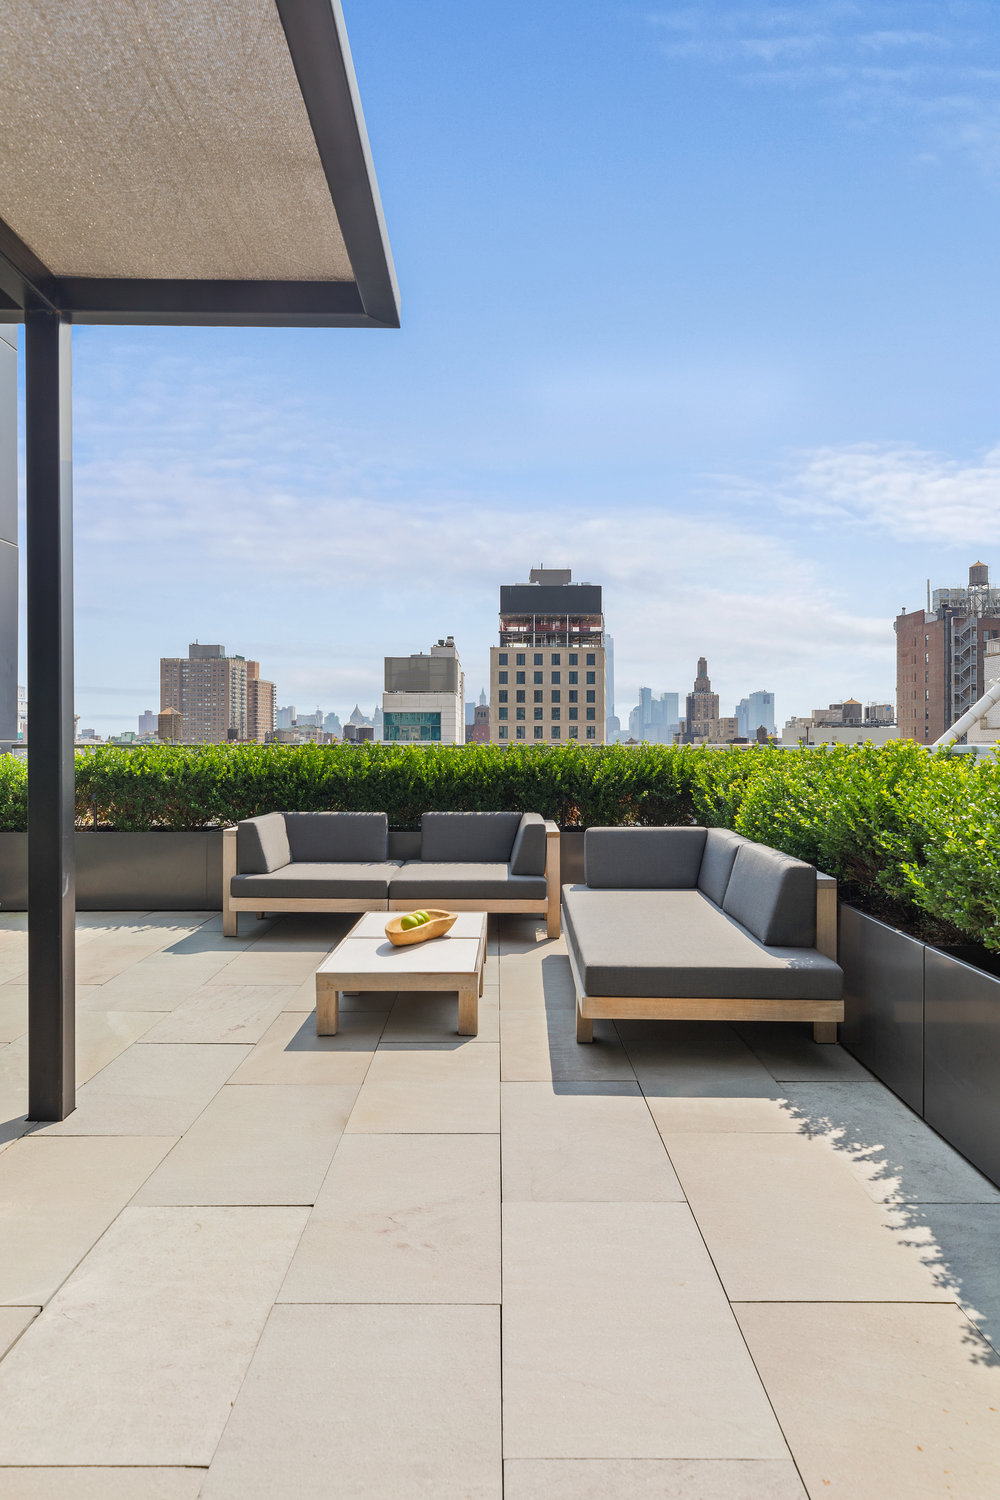 15 Union Square W New York NY - Josh Goetz Photography -8.JPG